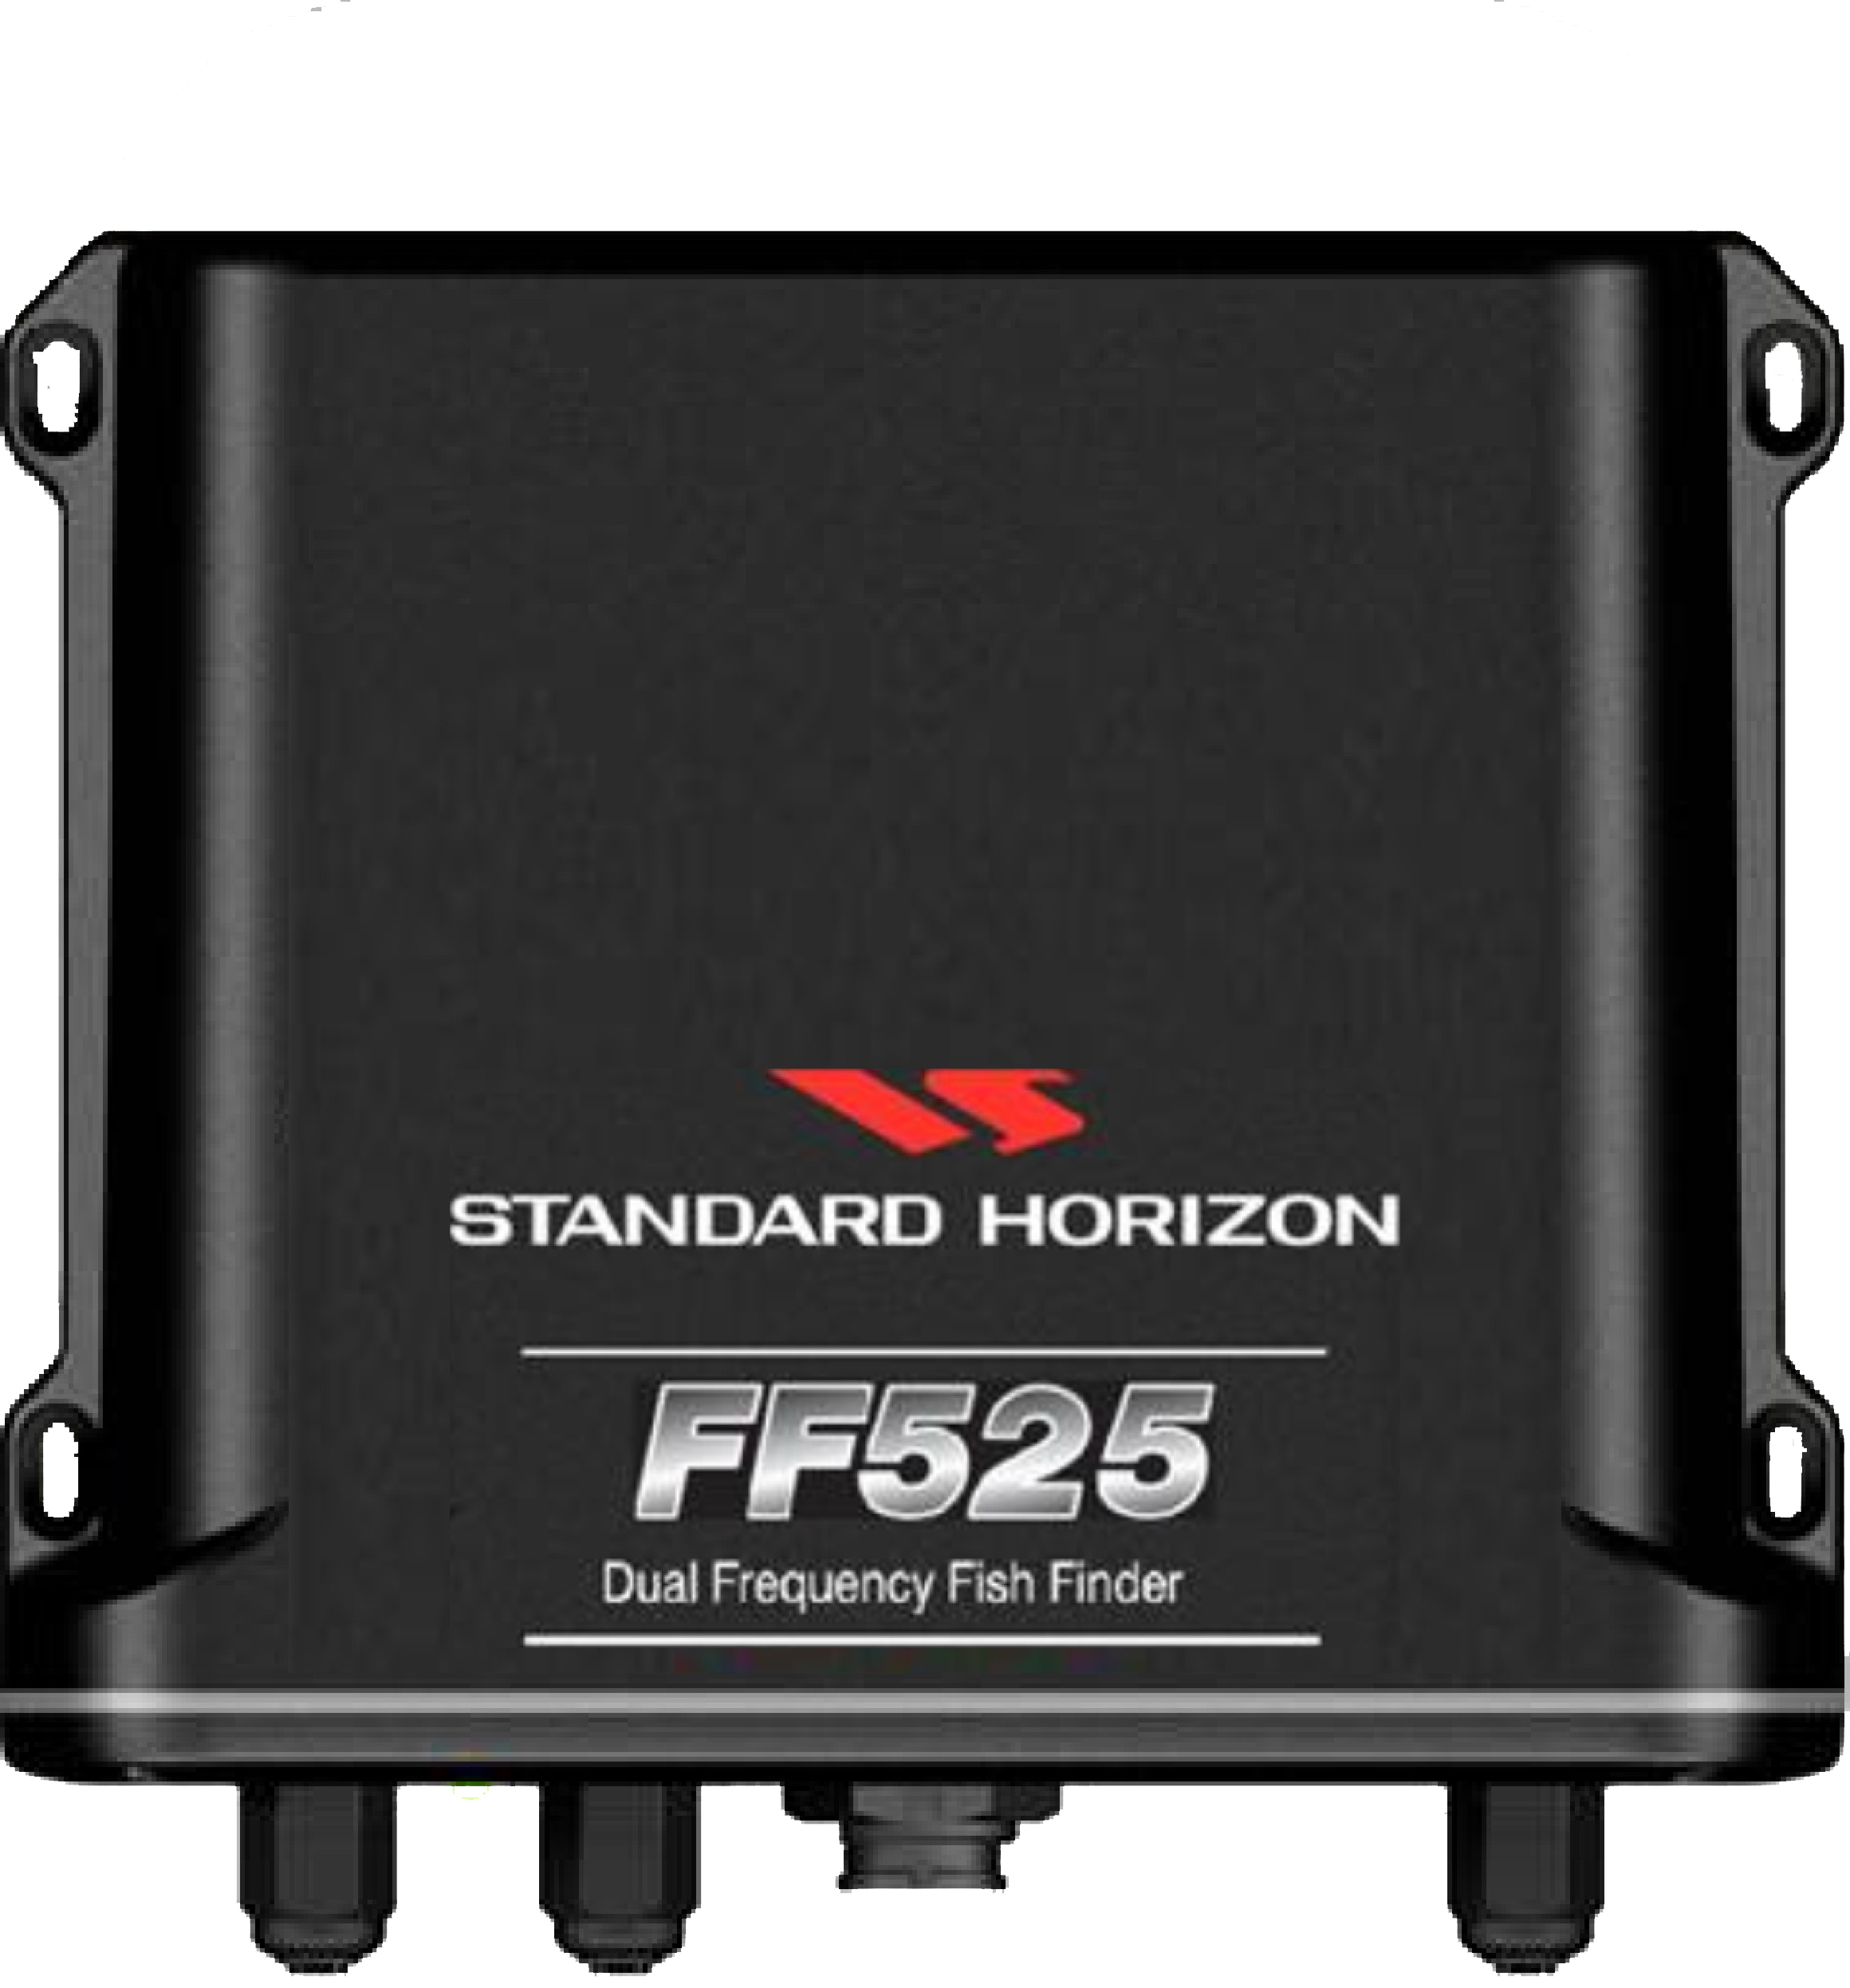 FF525 Fish Finder welcome to standardhorizon com wiring diagram for fish finder at alyssarenee.co